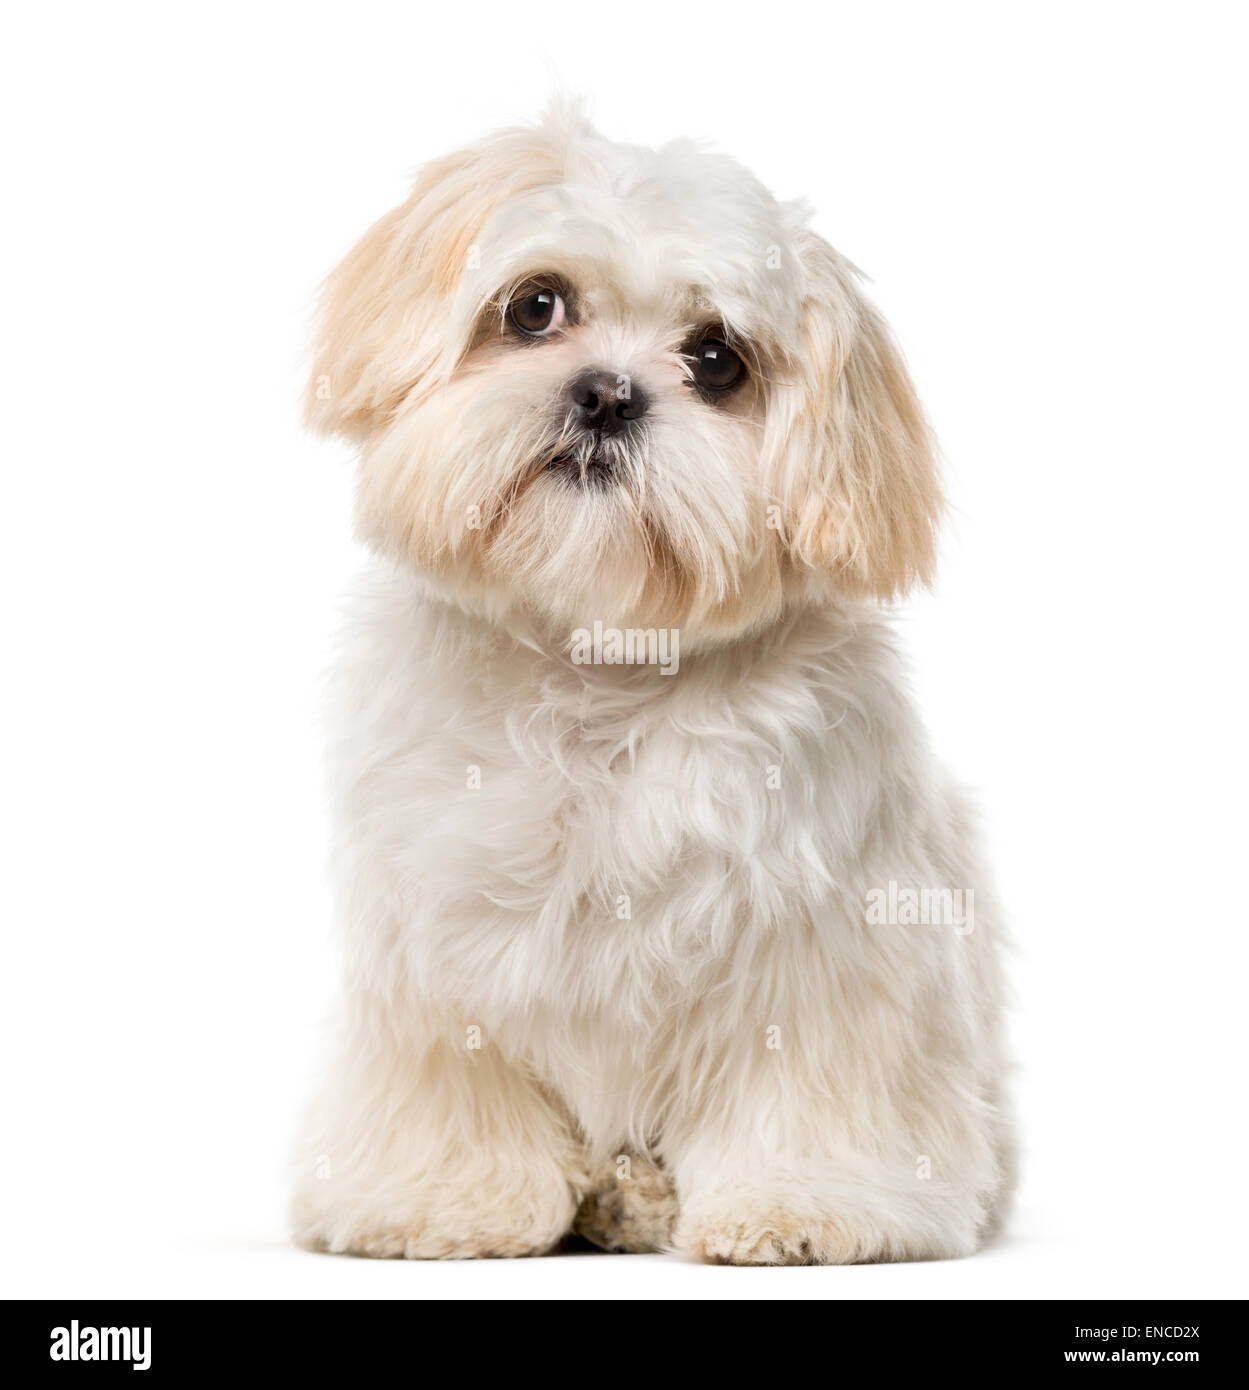 Shih Tzu puppy (6 months old) in front of a white background - Stock Image